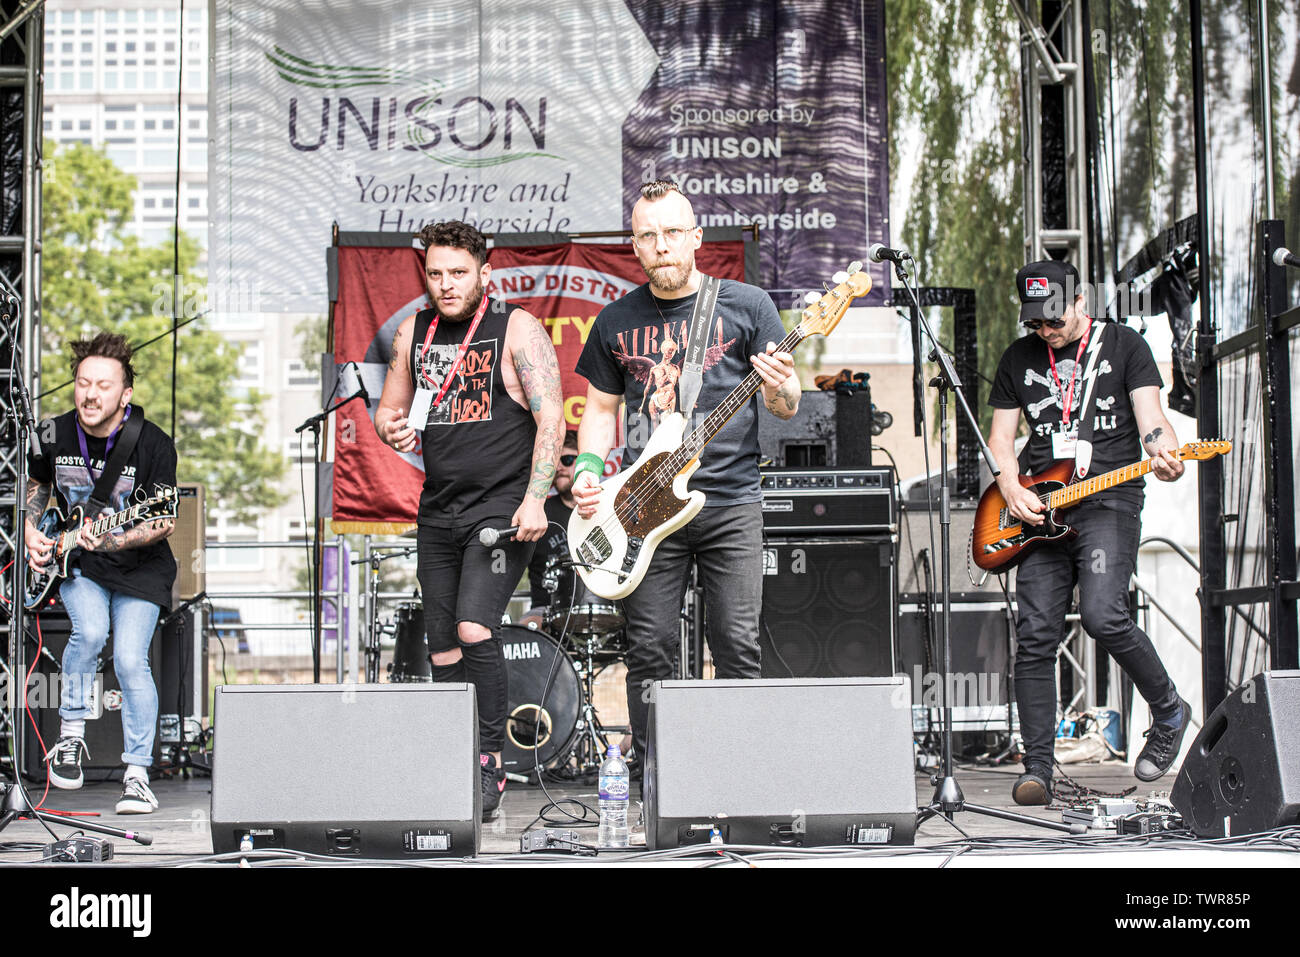 England, UK, Hull, 22nd June 2019, Bloodsport play main stage at  engage for change festival in Queens Gardens, Hull. An event supported by the Hull and District Trades Council. - Stock Image